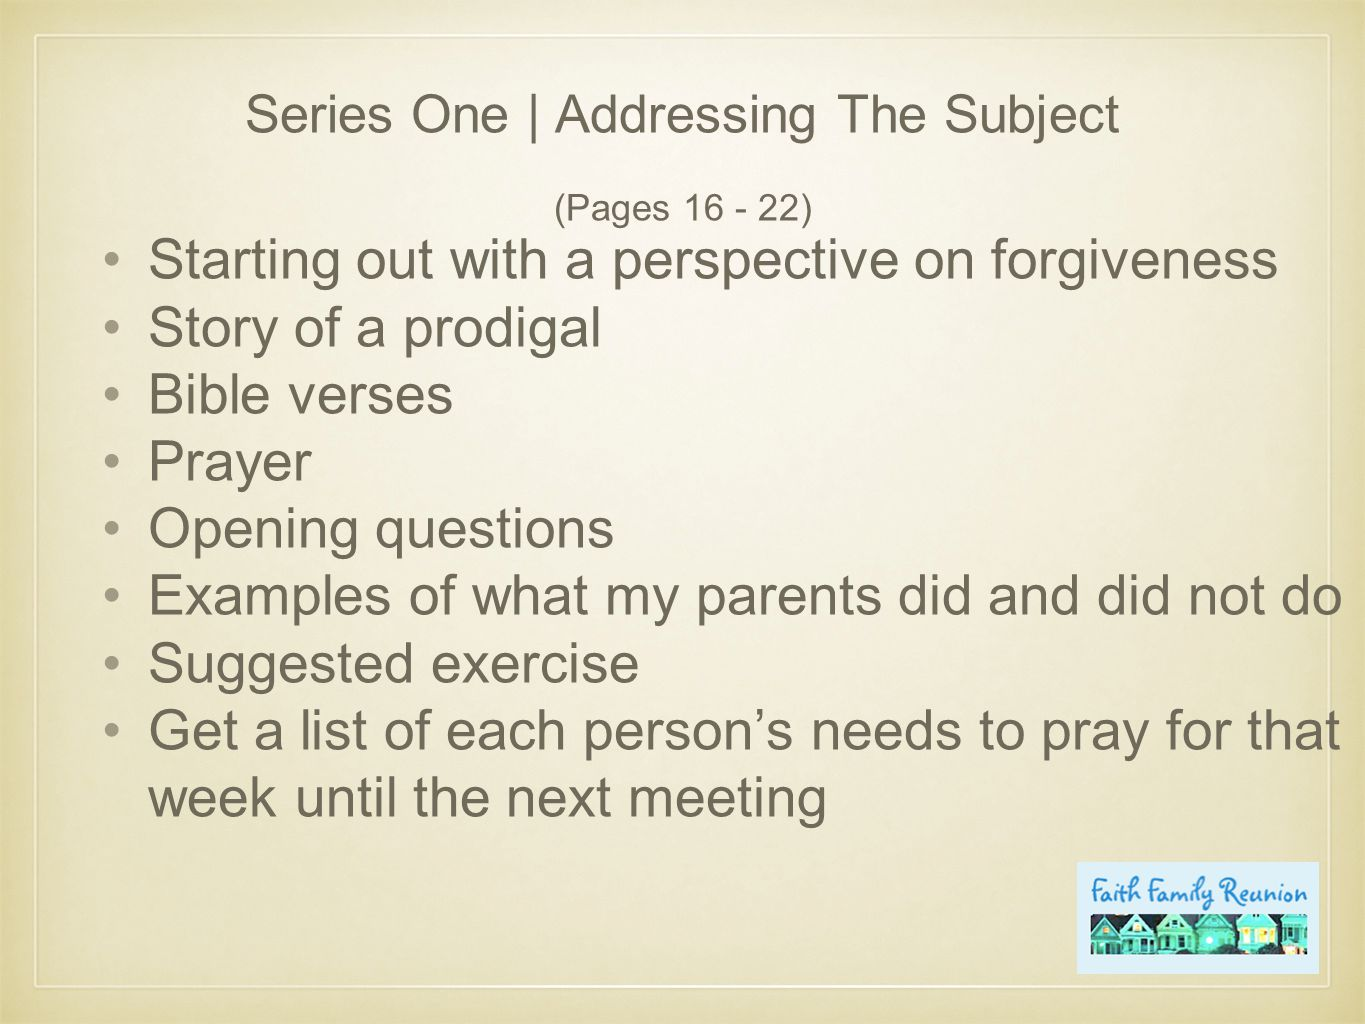 Series One | Addressing The Subject (Pages 16 - 22) Starting out with a perspective on forgiveness Story of a prodigal Bible verses Prayer Opening questions Examples of what my parents did and did not do Suggested exercise Get a list of each person's needs to pray for that week until the next meeting